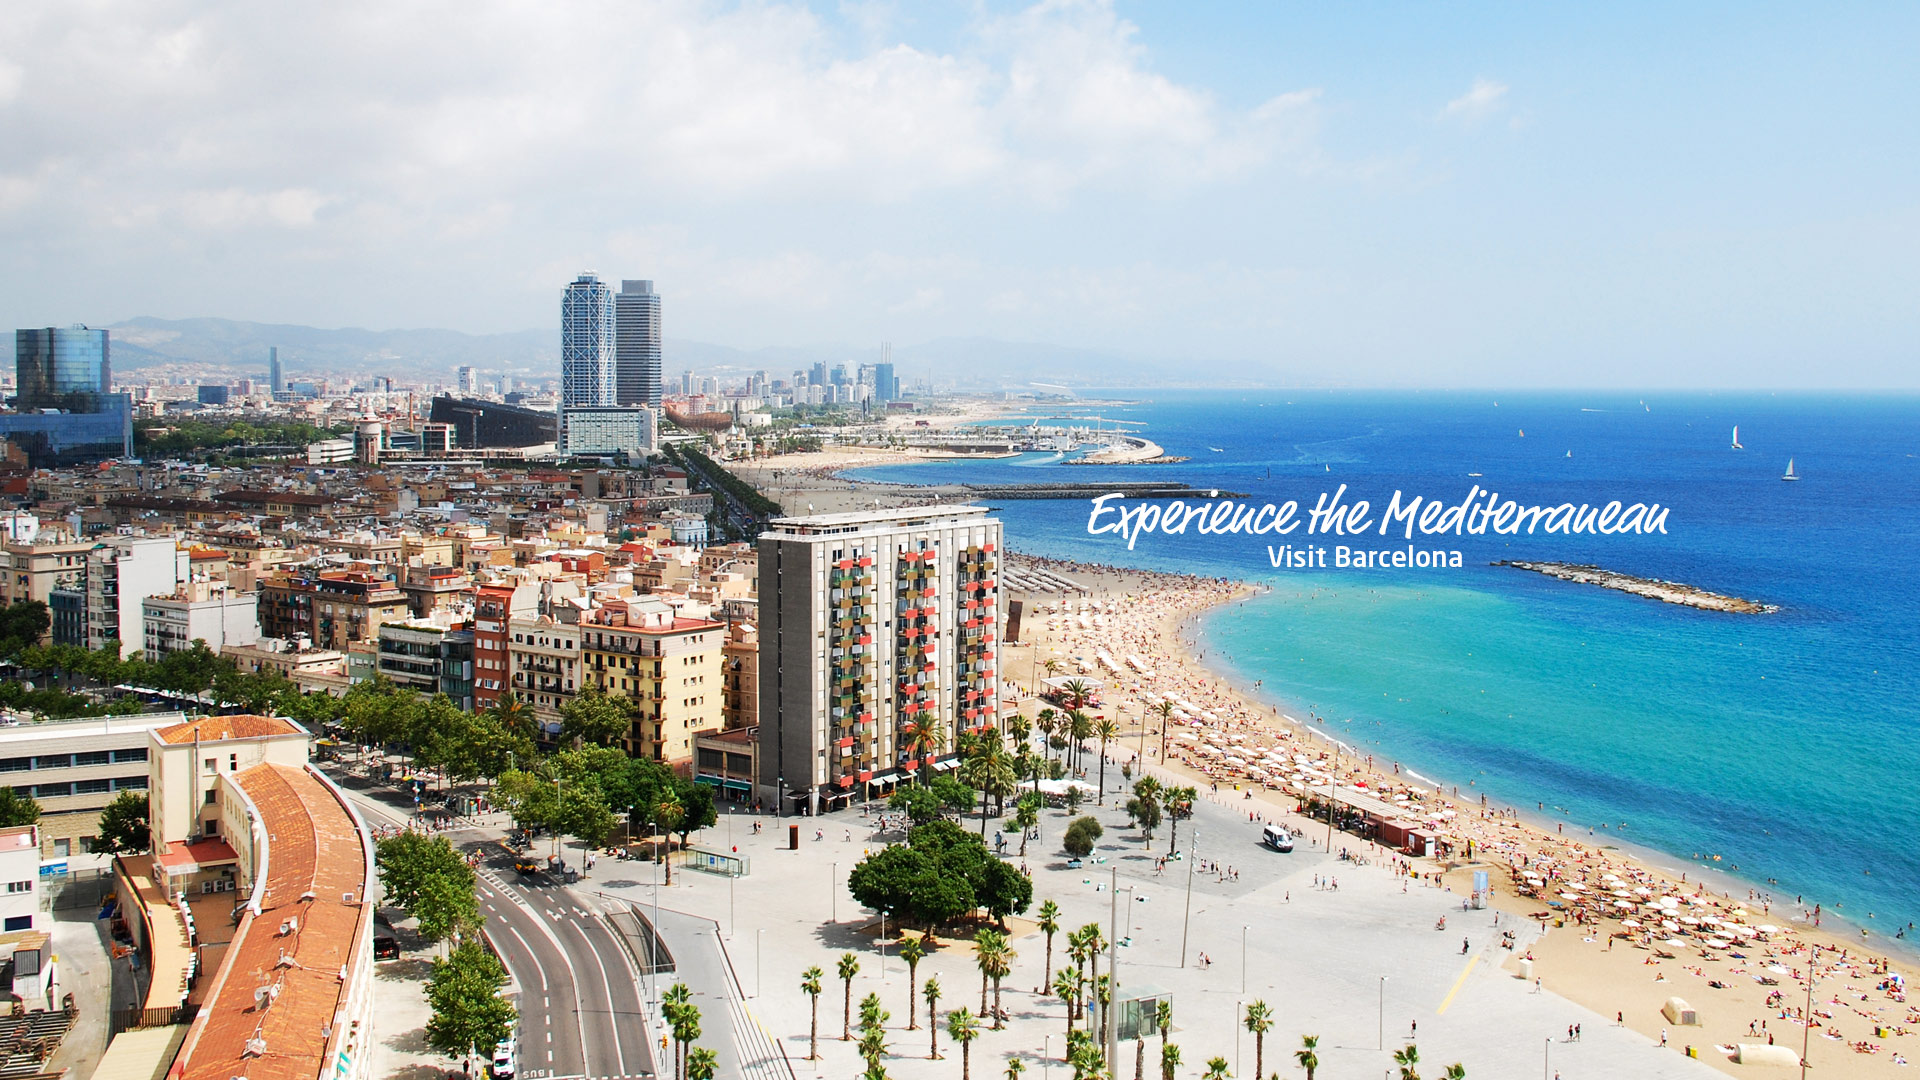 Experience the Mediterranean